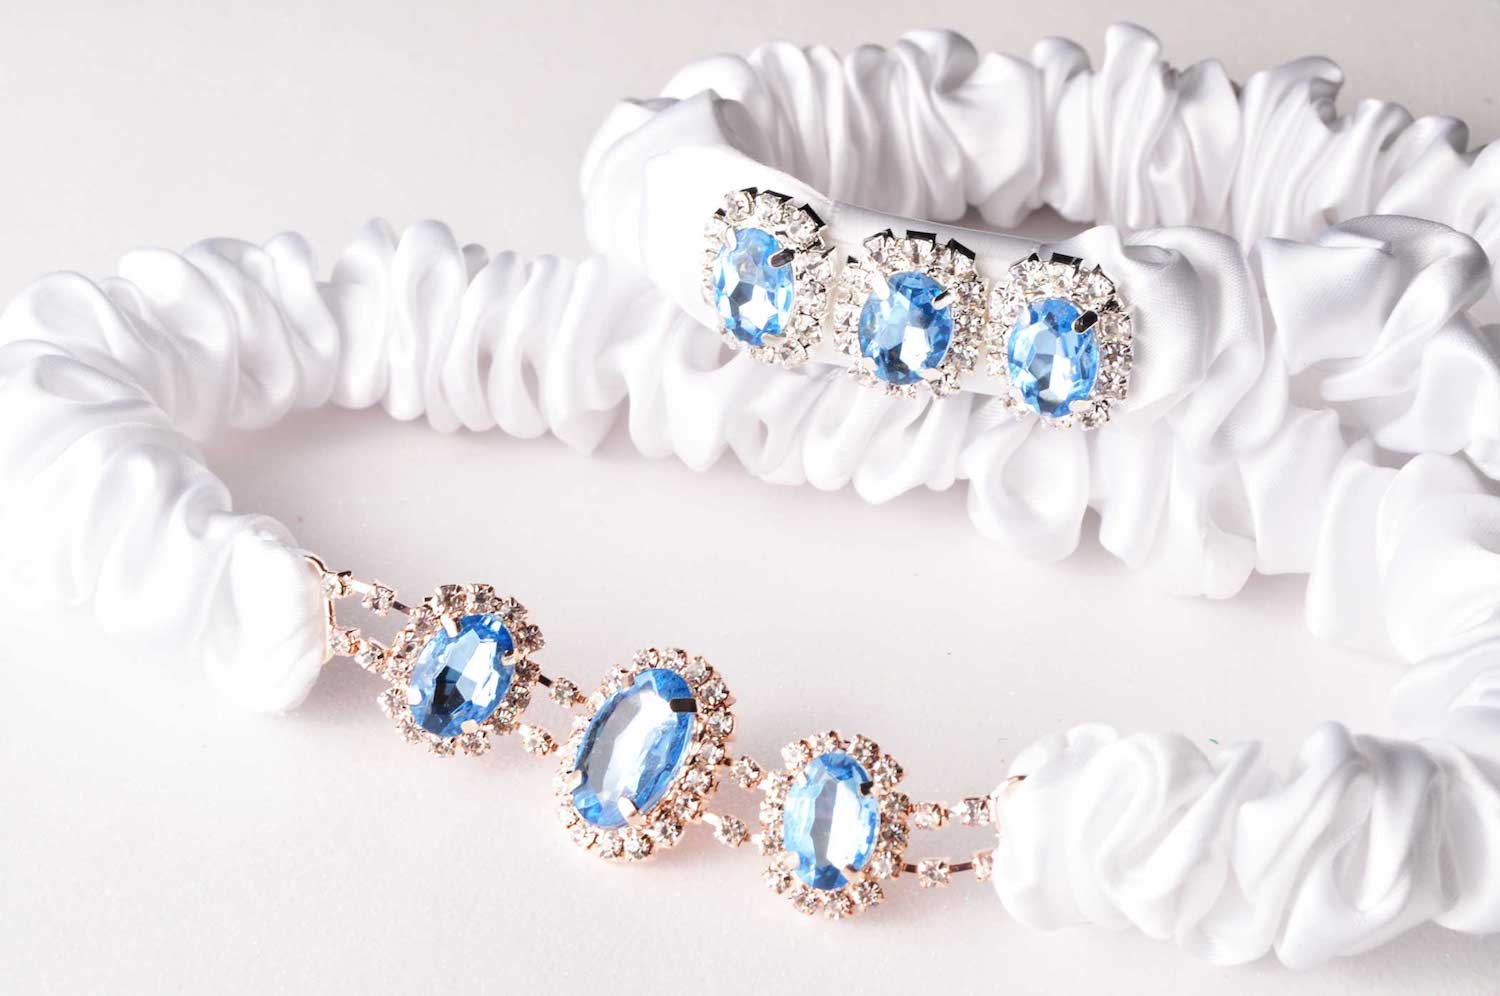 Handmade Something Blue Wedding Garter with a light blue shimmer rhinestones and dainty diamante - details for blue weddings - handmade bridal accessories from Knotted and Bent - see more on www.brendasweddingblog.com